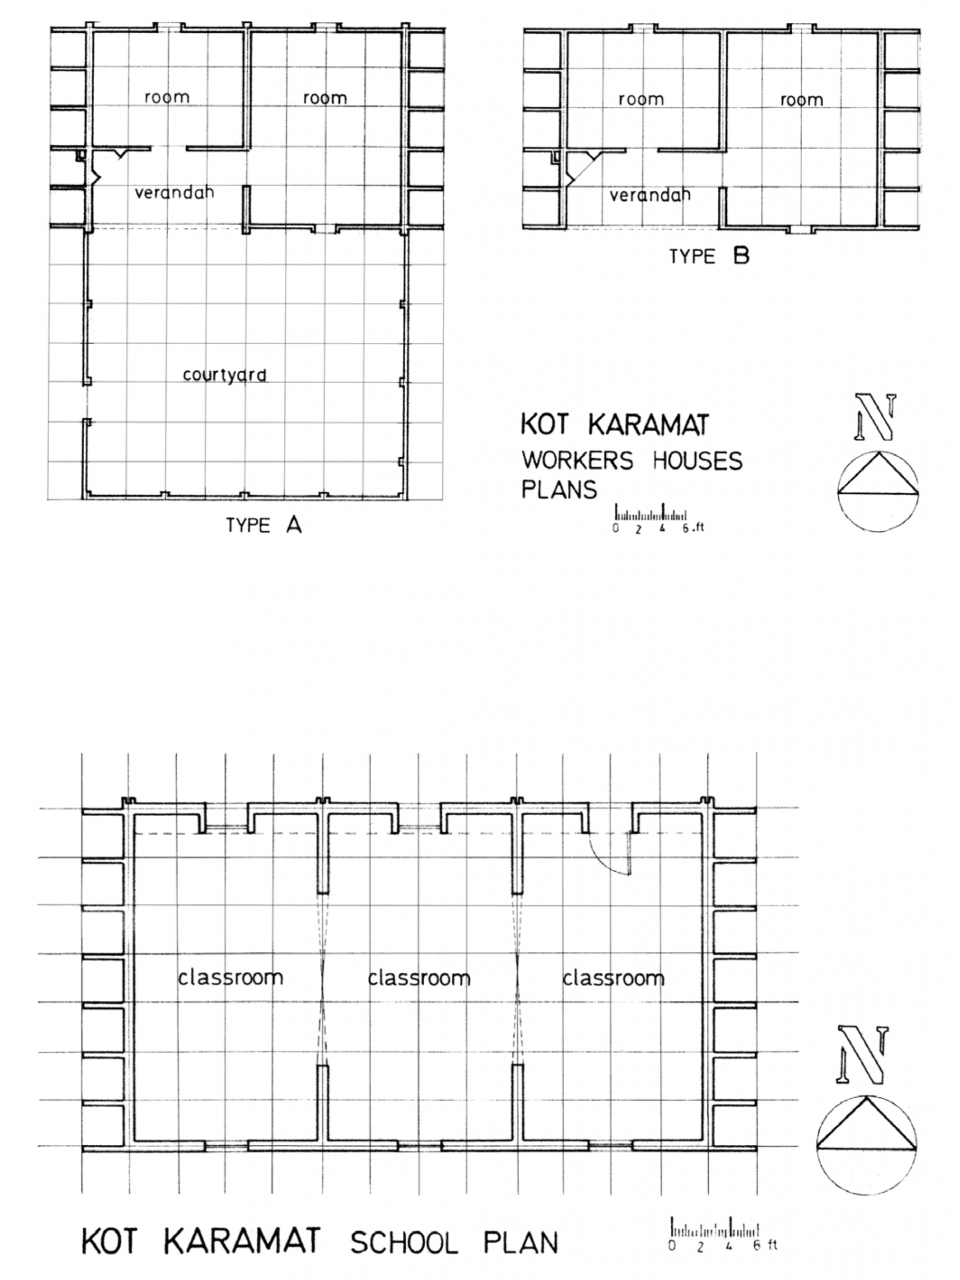 Workers houses (top) and School plans